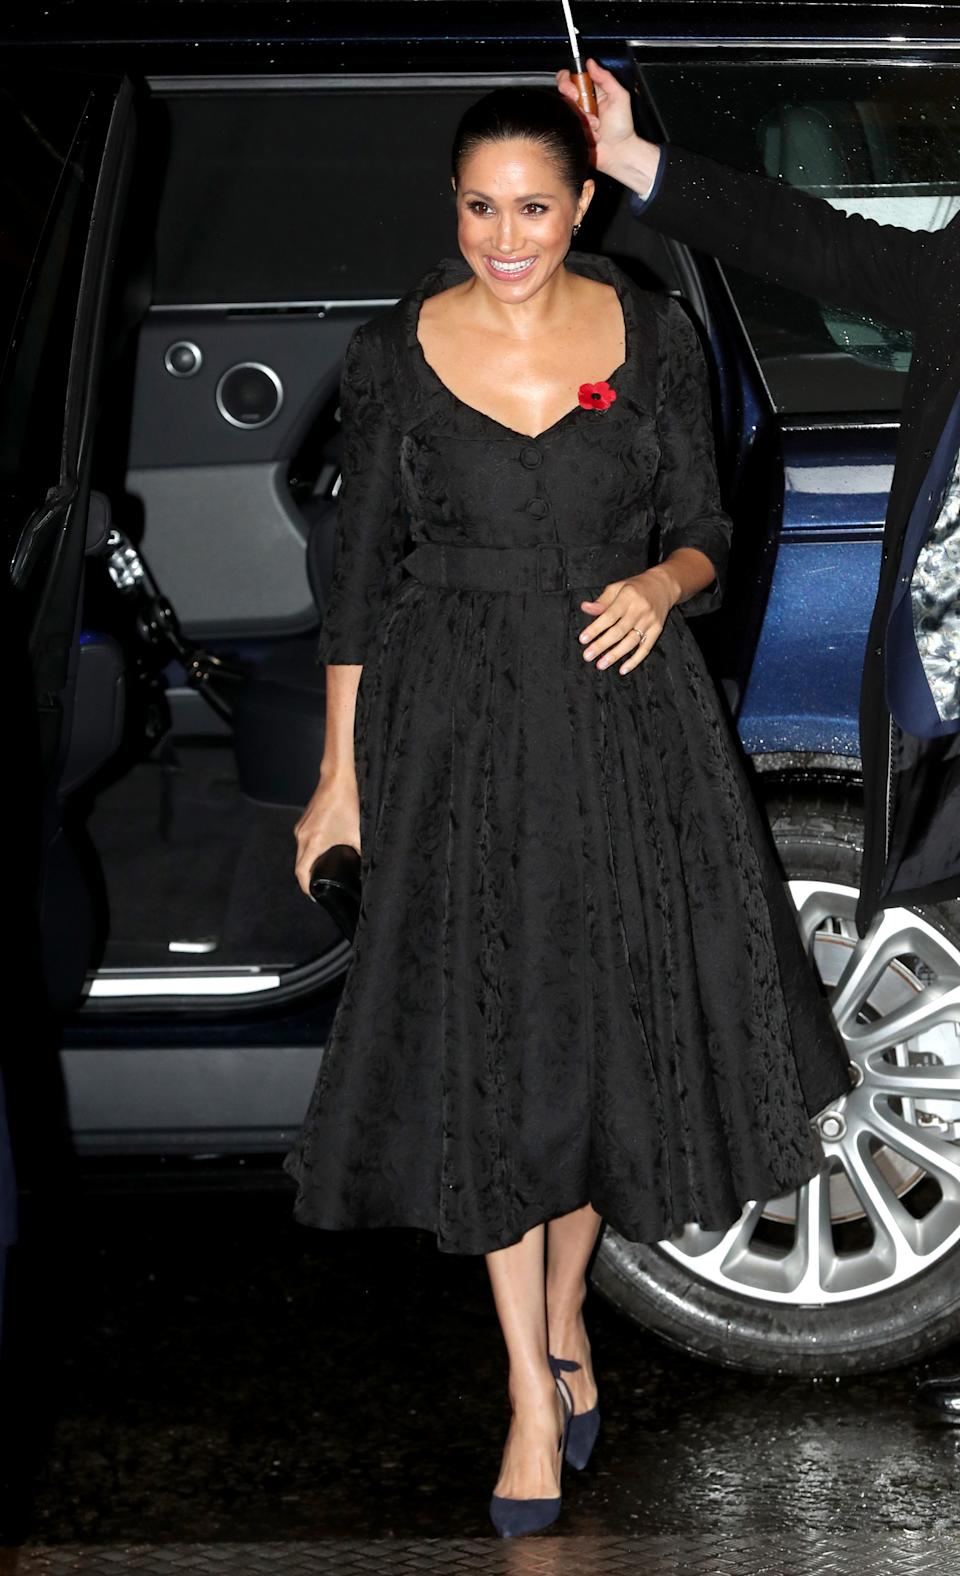 Meghan Markle attended the annual Royal British Legion Festival of Remembrance at the Royal Albert Hall in London. (Photo: Chris Jackson/- WPA Pool/Getty Images)